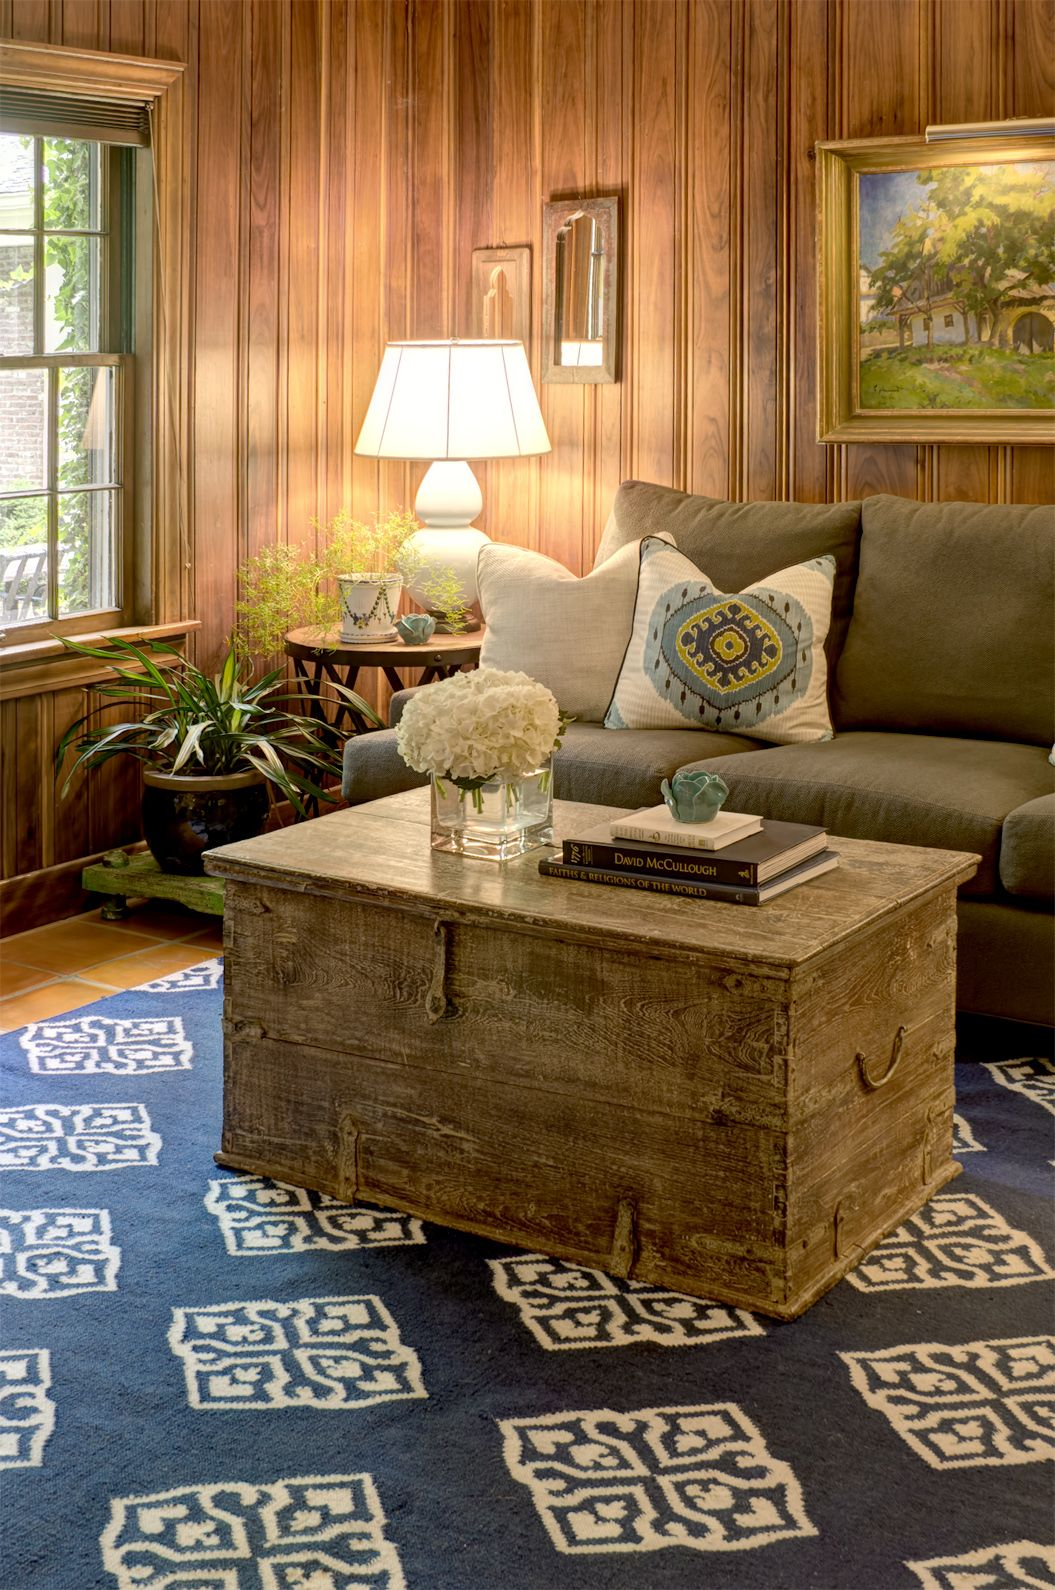 Ideas For Rooms With Wood Paneling: An Old Trunk Anchors This Setting Within A Gorgeous Wood